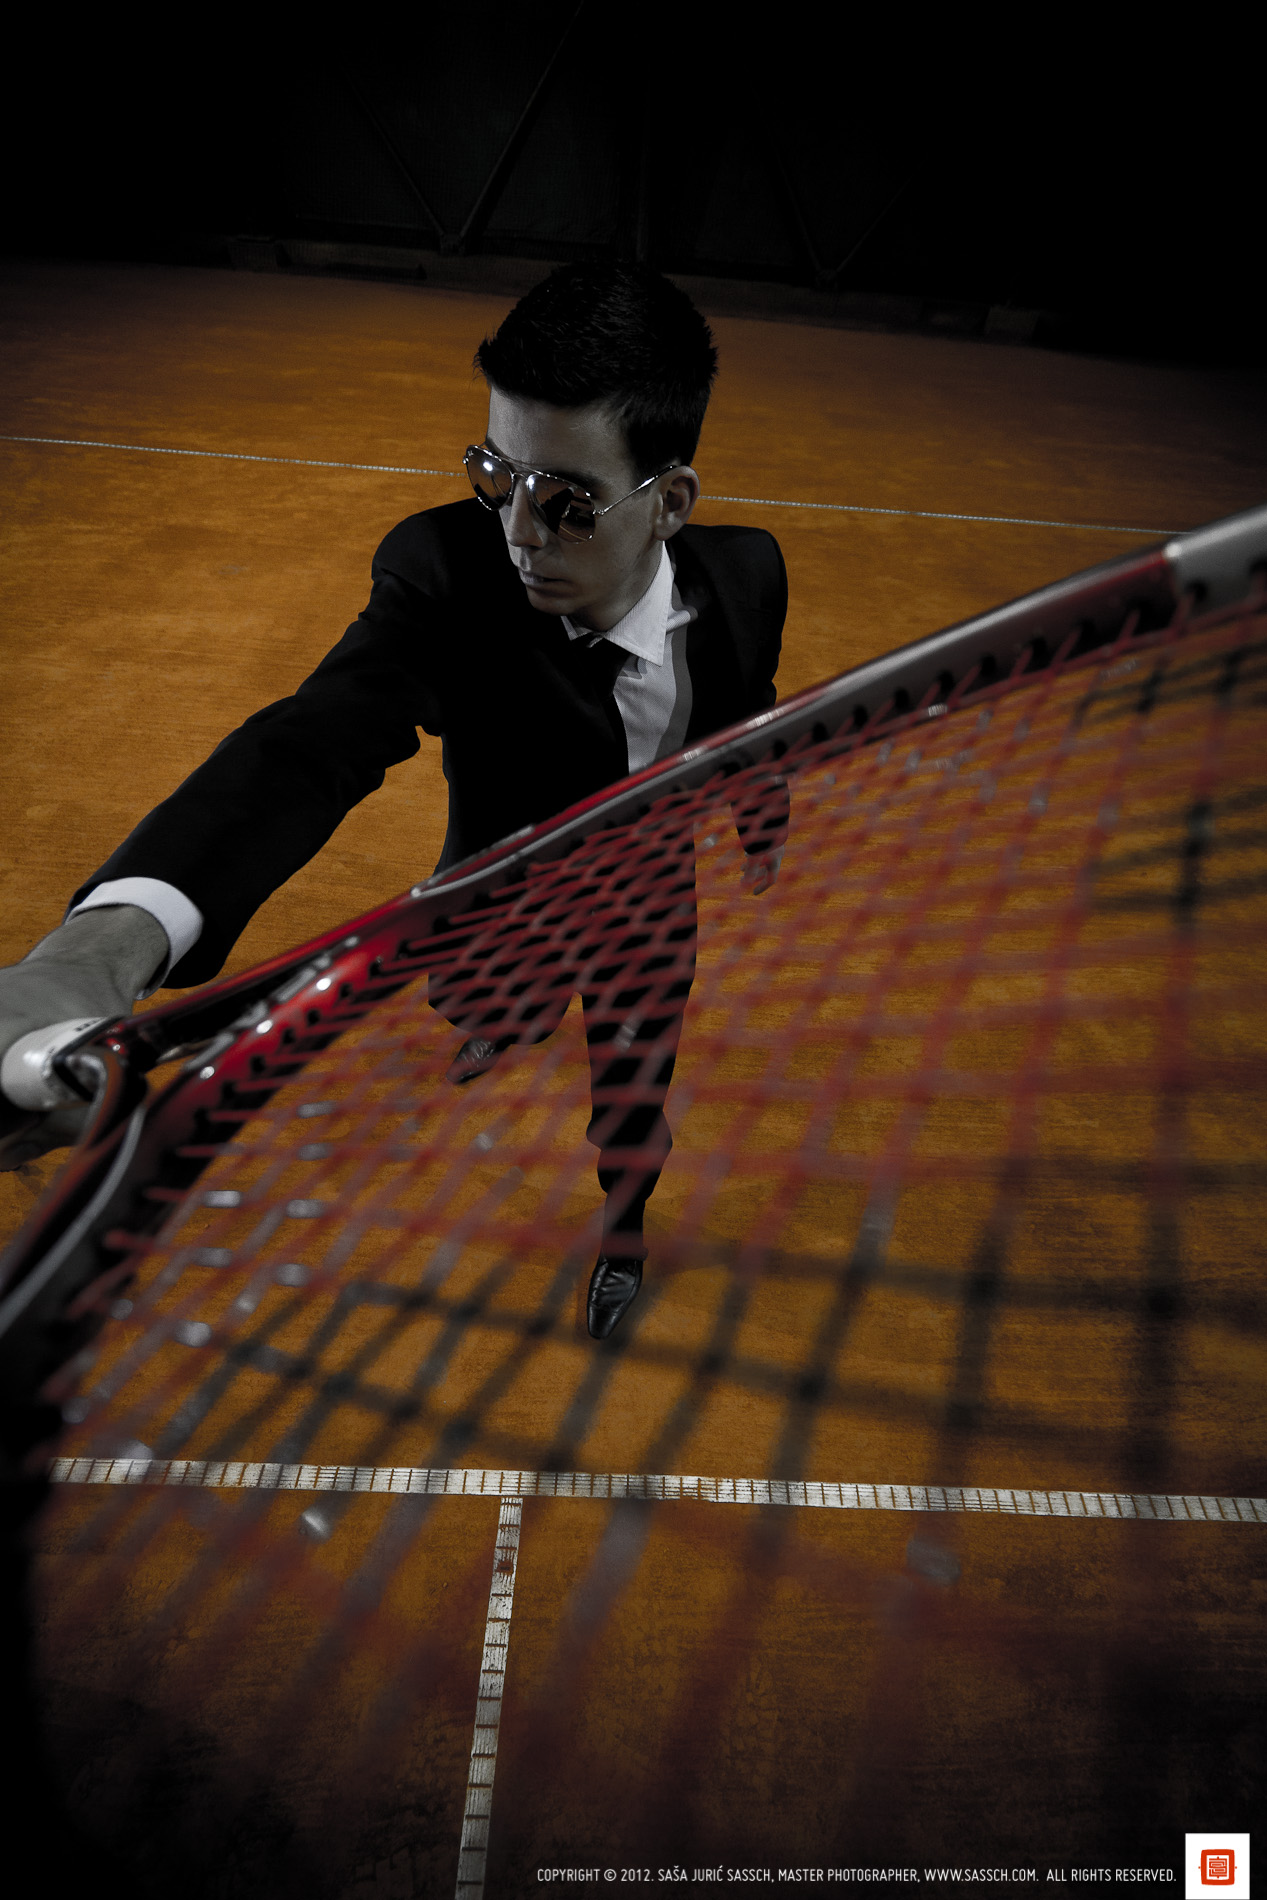 Suit UP for Tennis